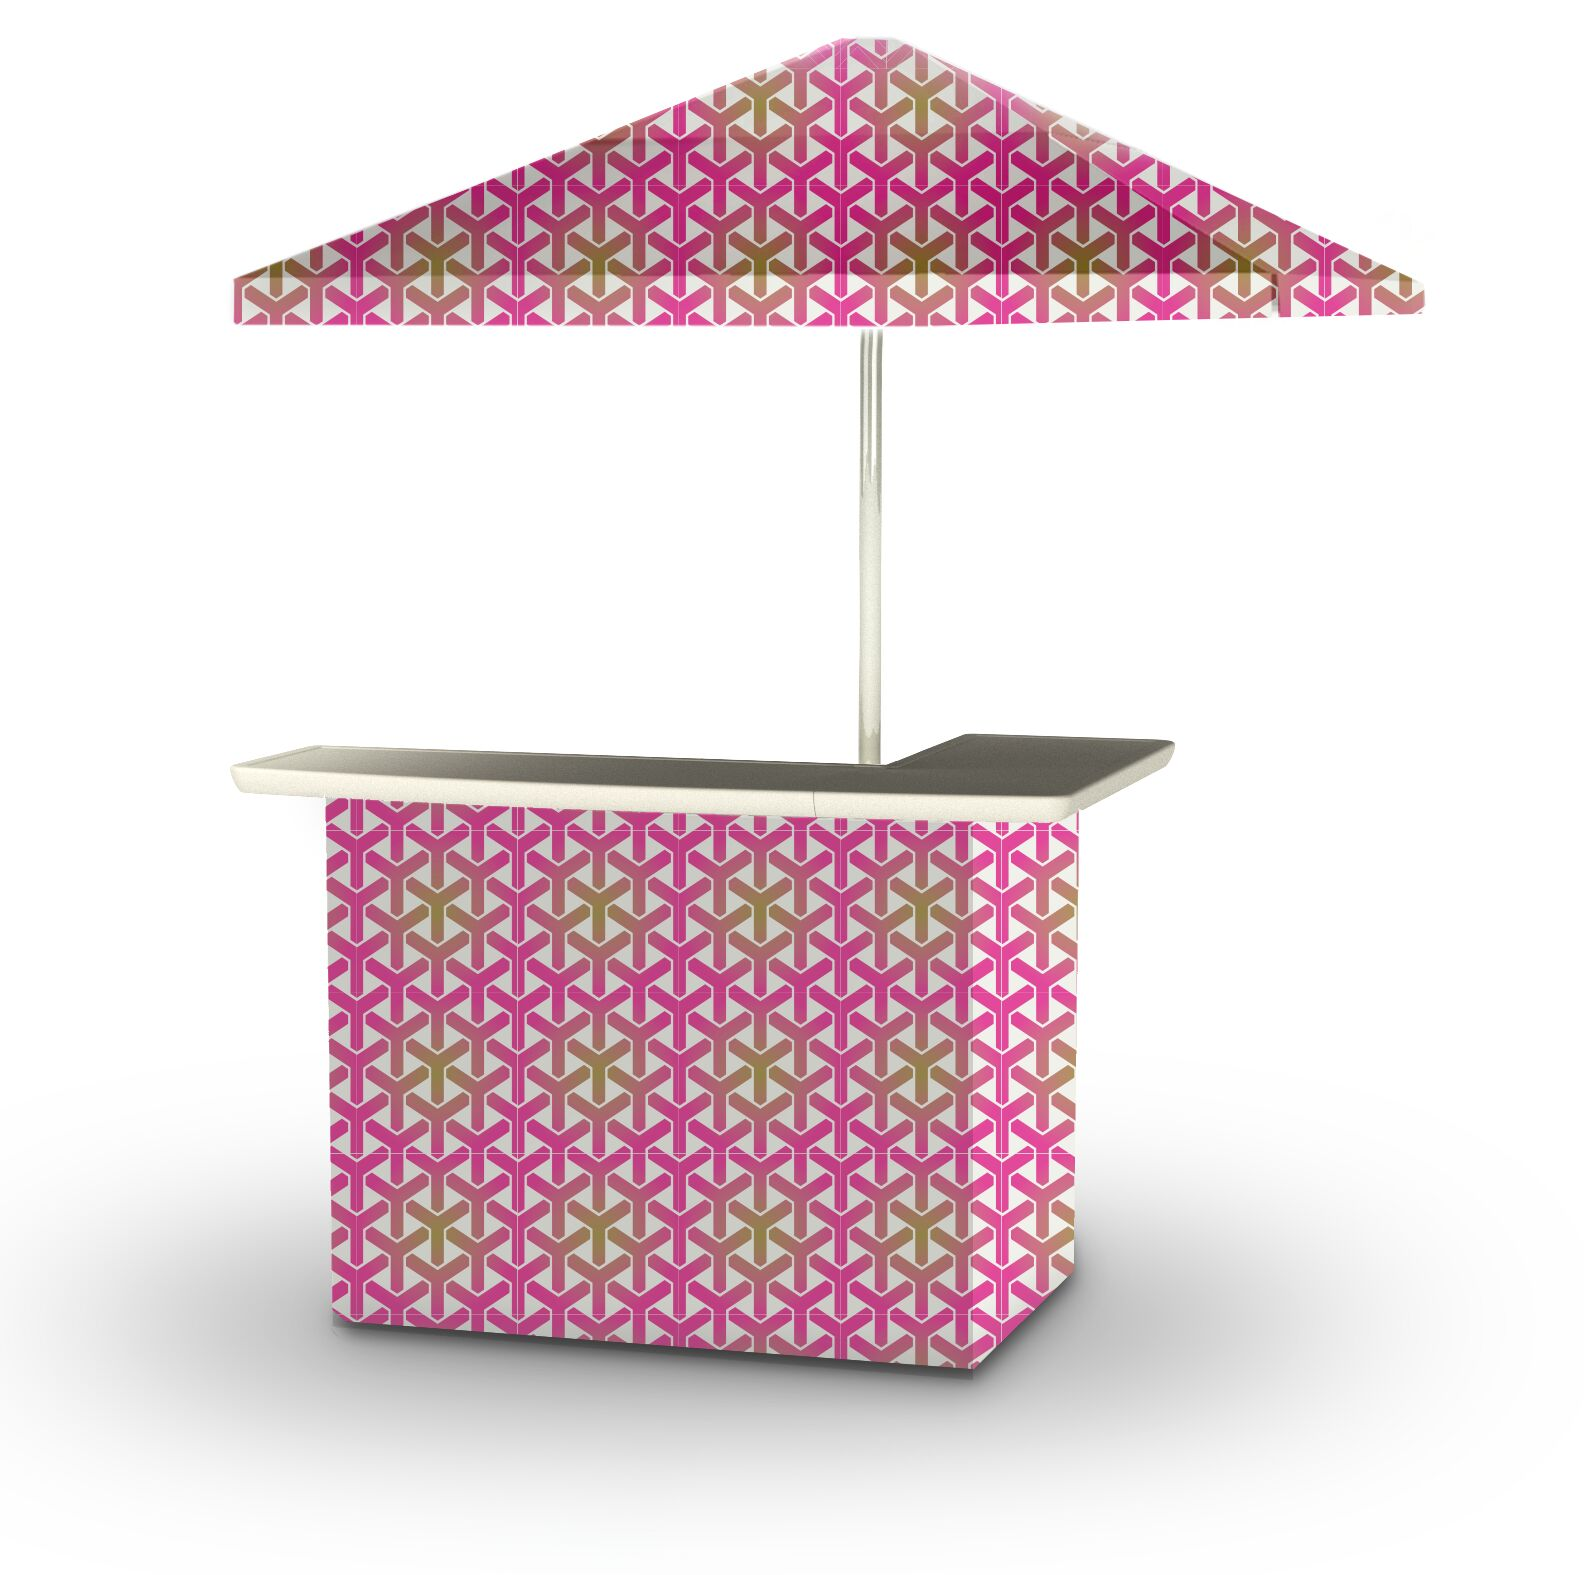 5 Piece Patio Home bar Finish: Gold/Pink/White